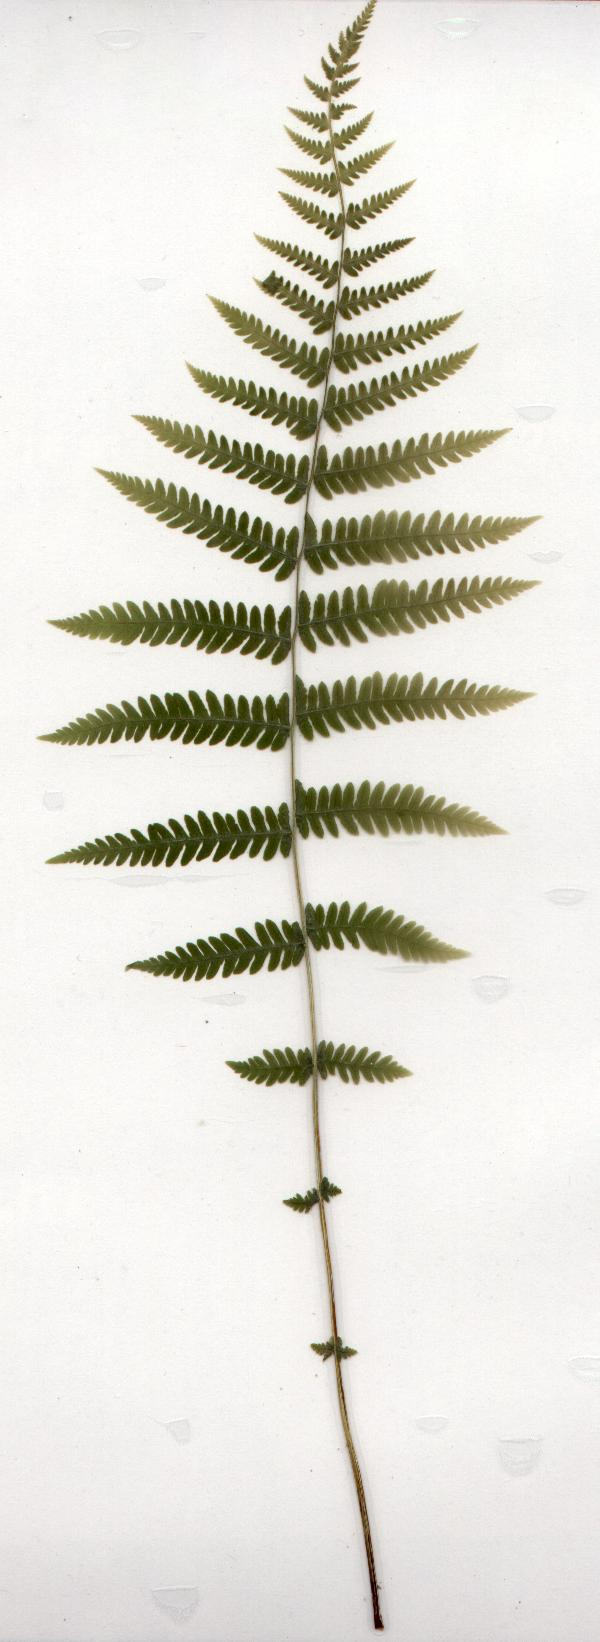 Thelypteris noveboracensis = New York Fern